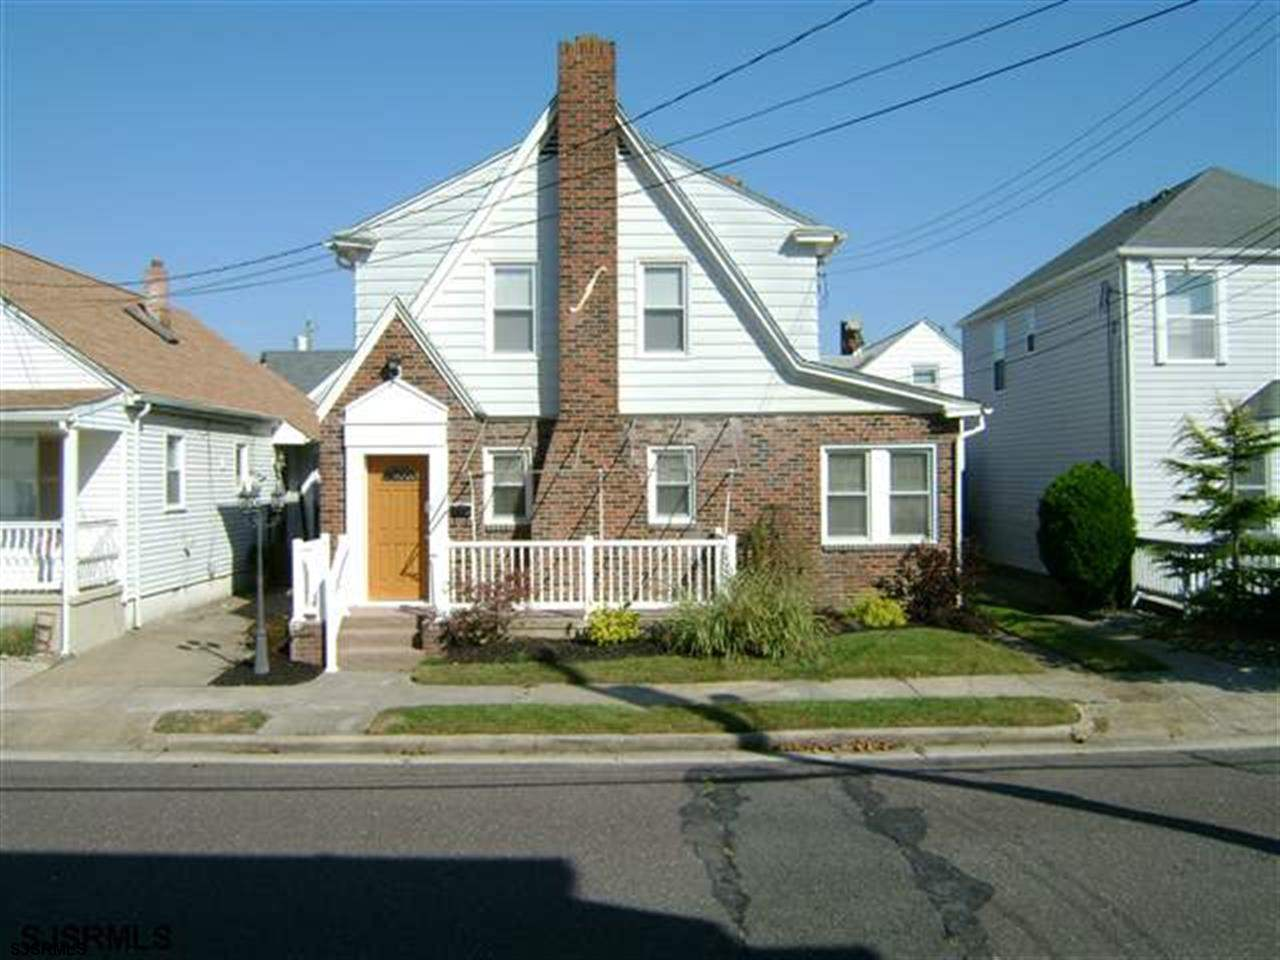 Rental Homes for Rent, ListingId:26627454, location: 13 S Jerome Ave Margate City 08402